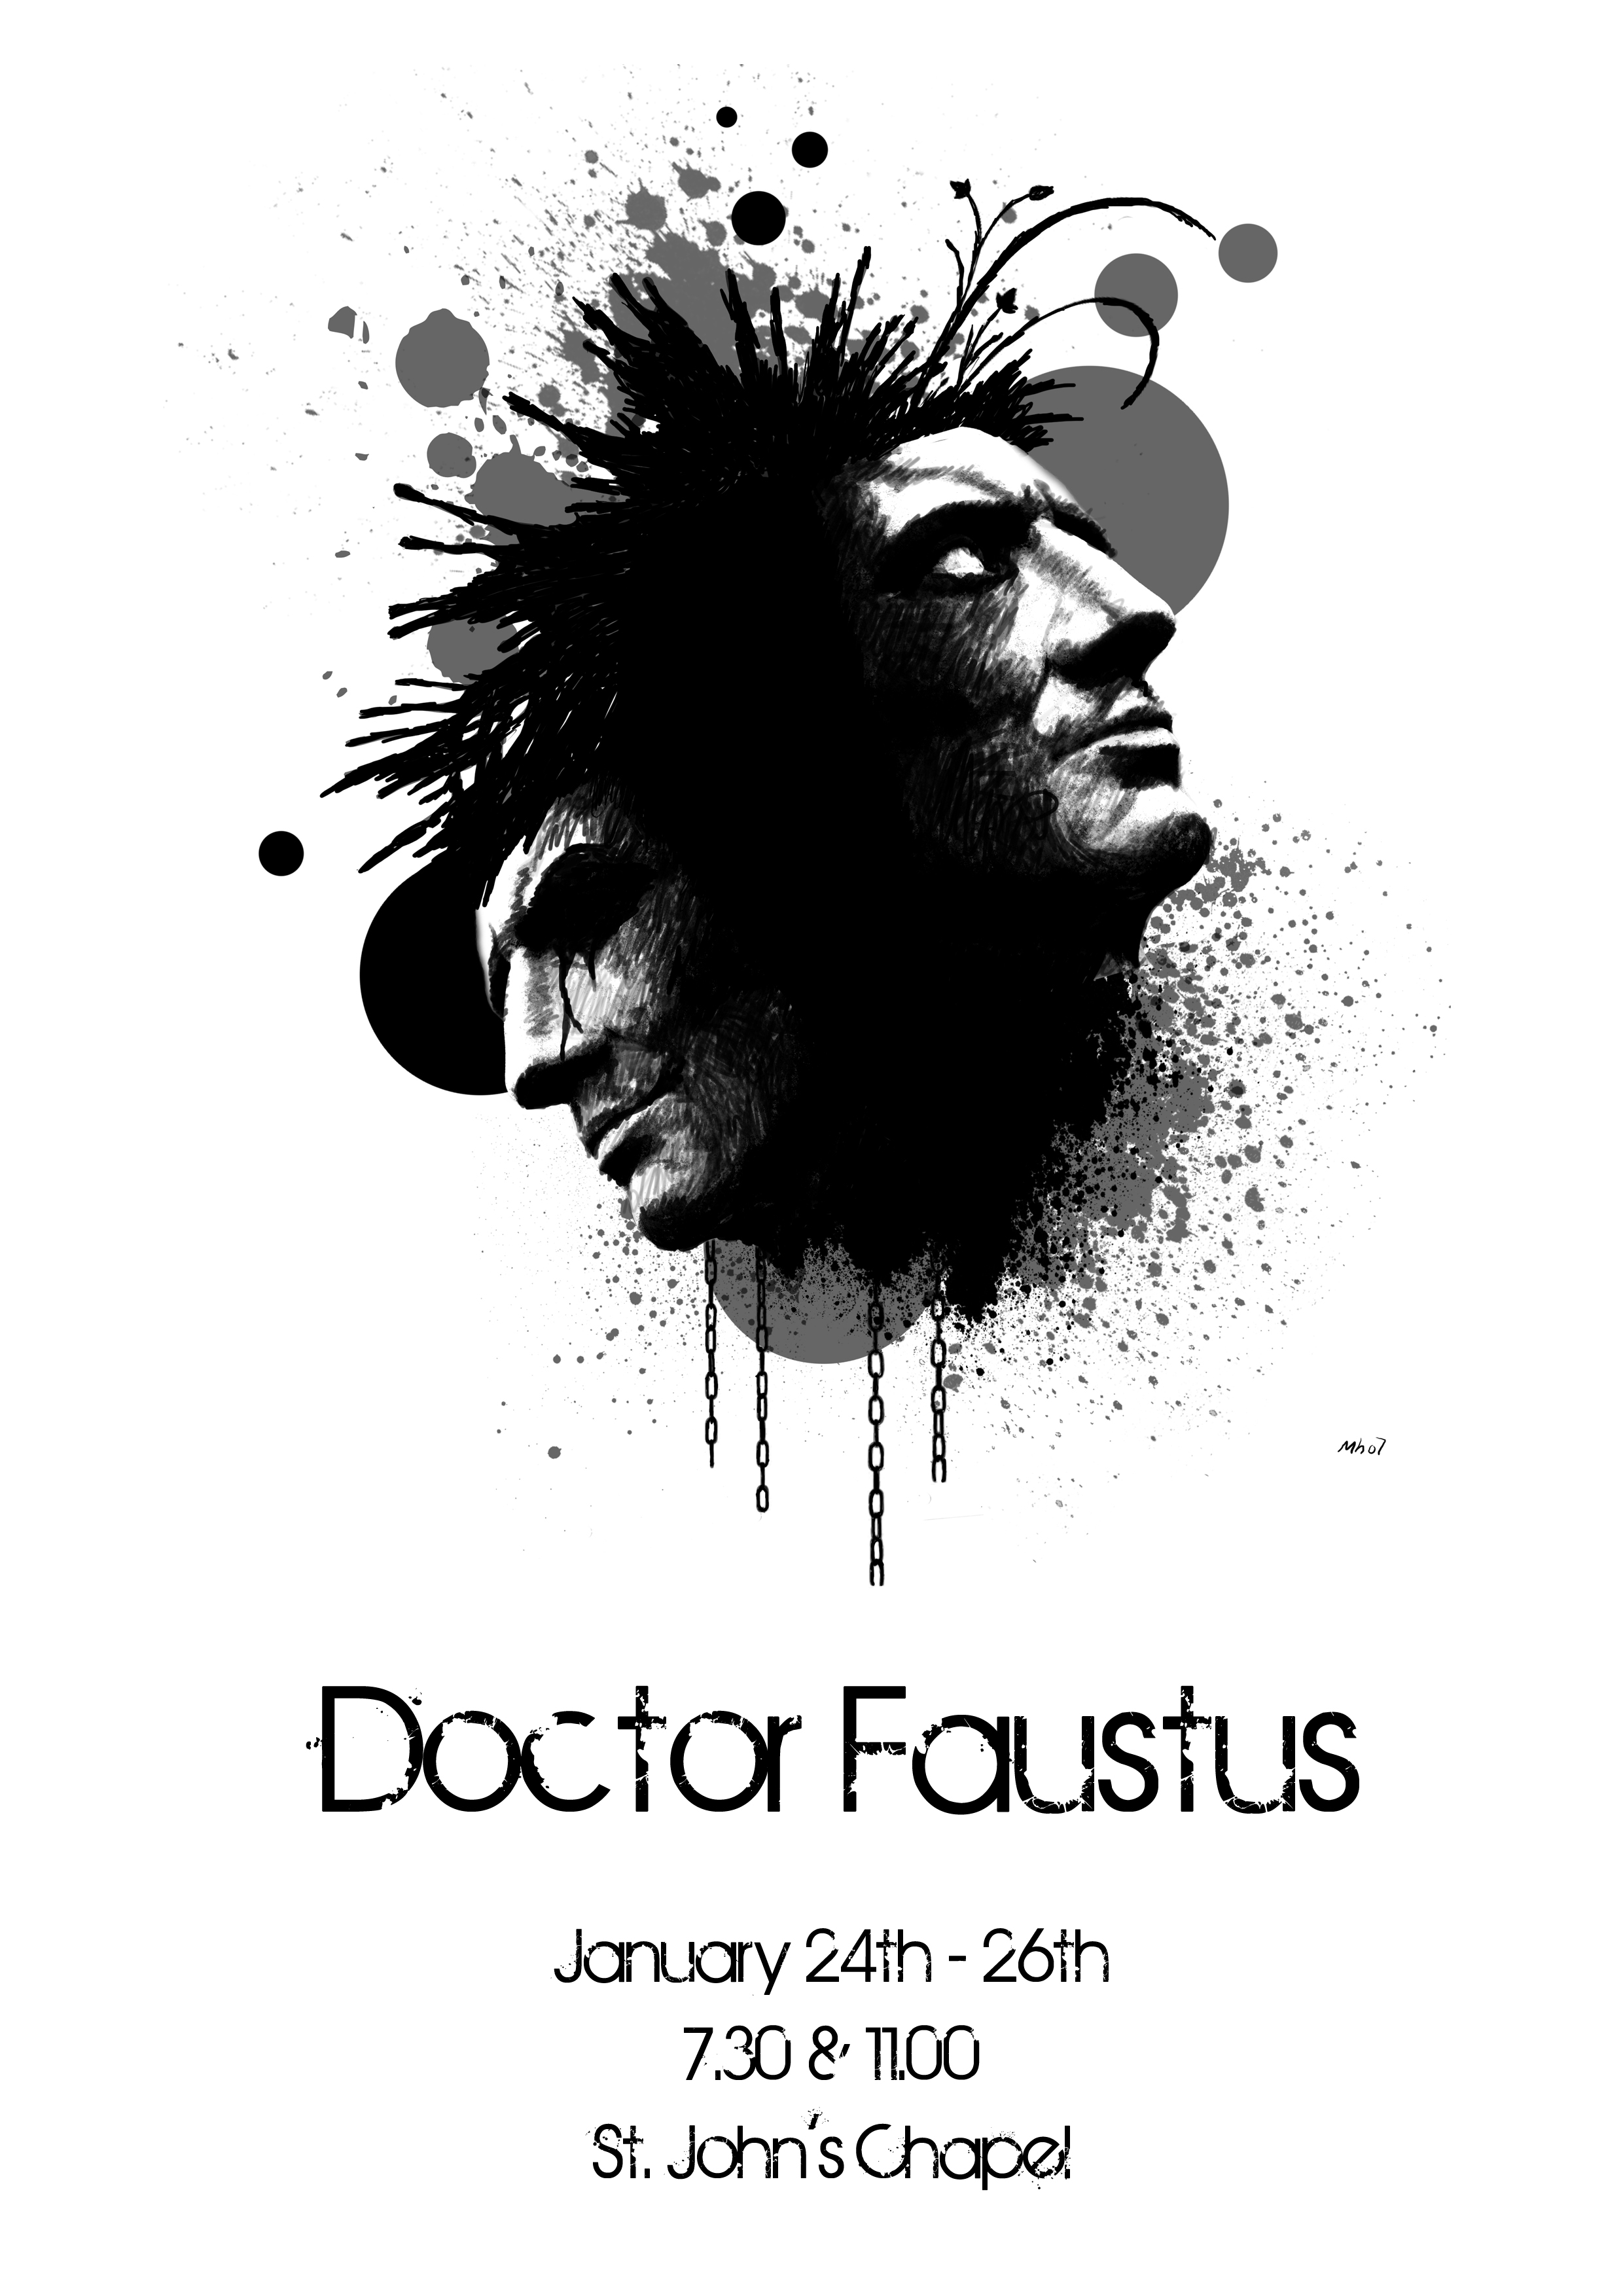 What part of Doctor Faustus do you think reflects key themes of the Renaissance?